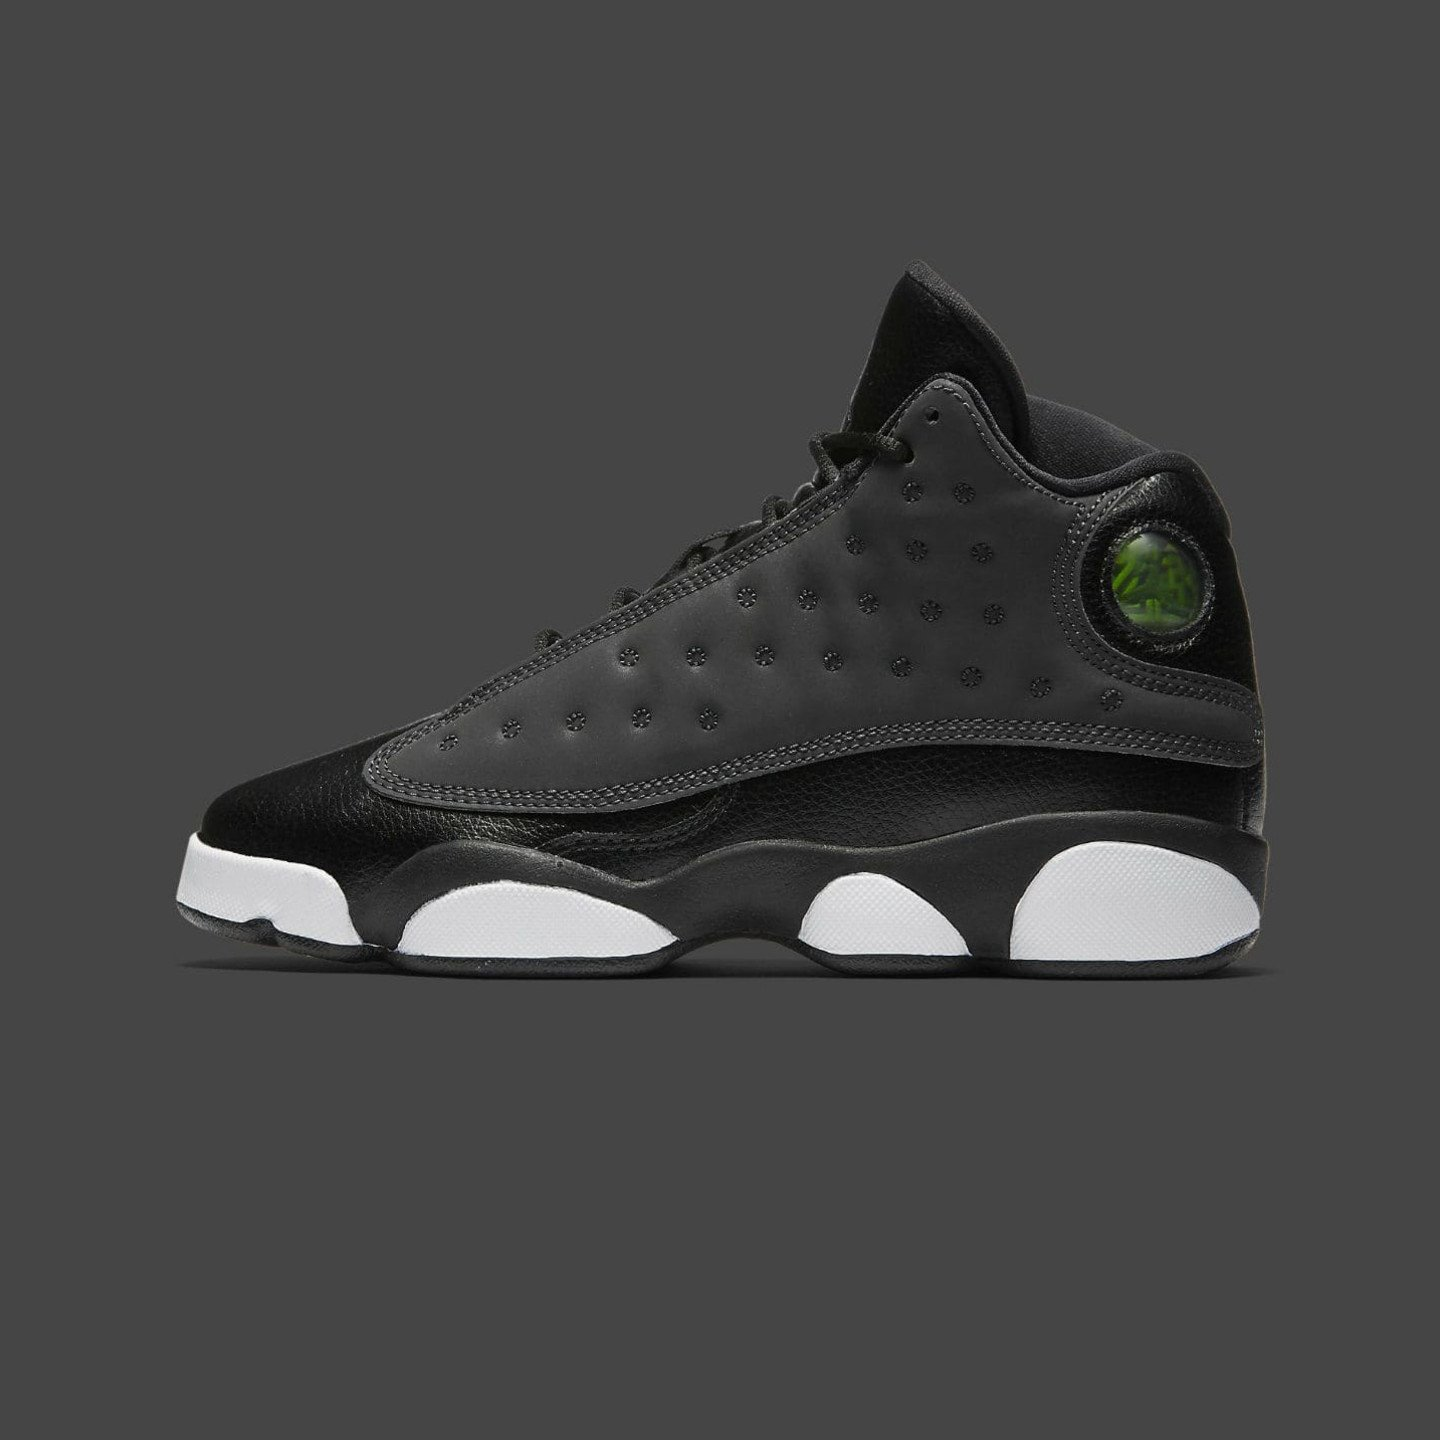 Jordan Air Jordan 13 Retro GS Anthracite / Black / Hyper Pink 439358-009-39